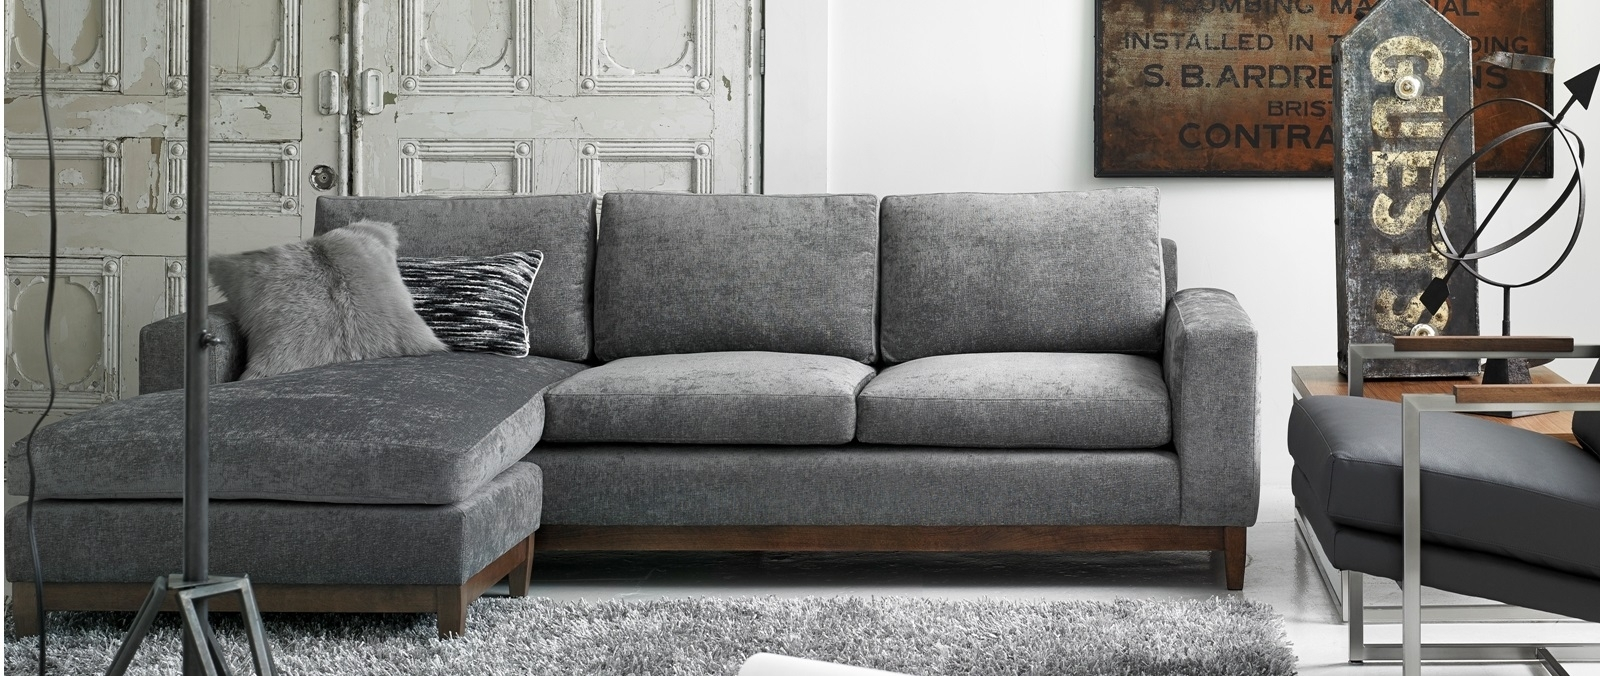 Modern Furniture Store Montreal And Ottawa | Mikazahome With Ottawa Sale Sectional Sofas (View 3 of 10)